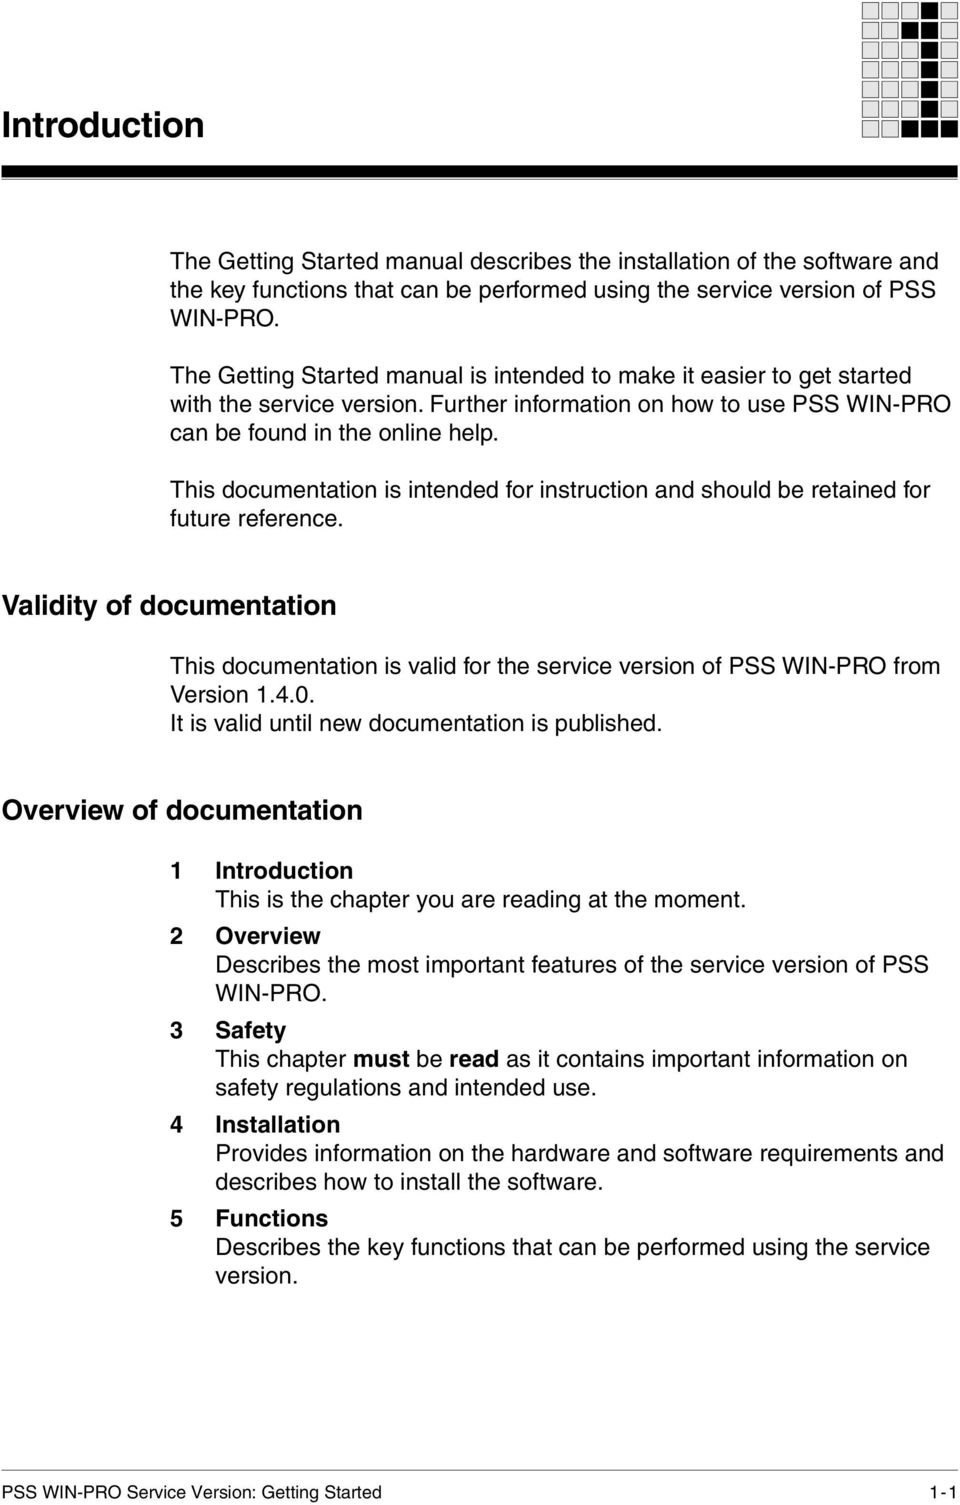 This documentation is intended for instruction and should be retained for future reference. Validity of documentation This documentation is valid for the service version of PSS WIN-PRO from Version 1.